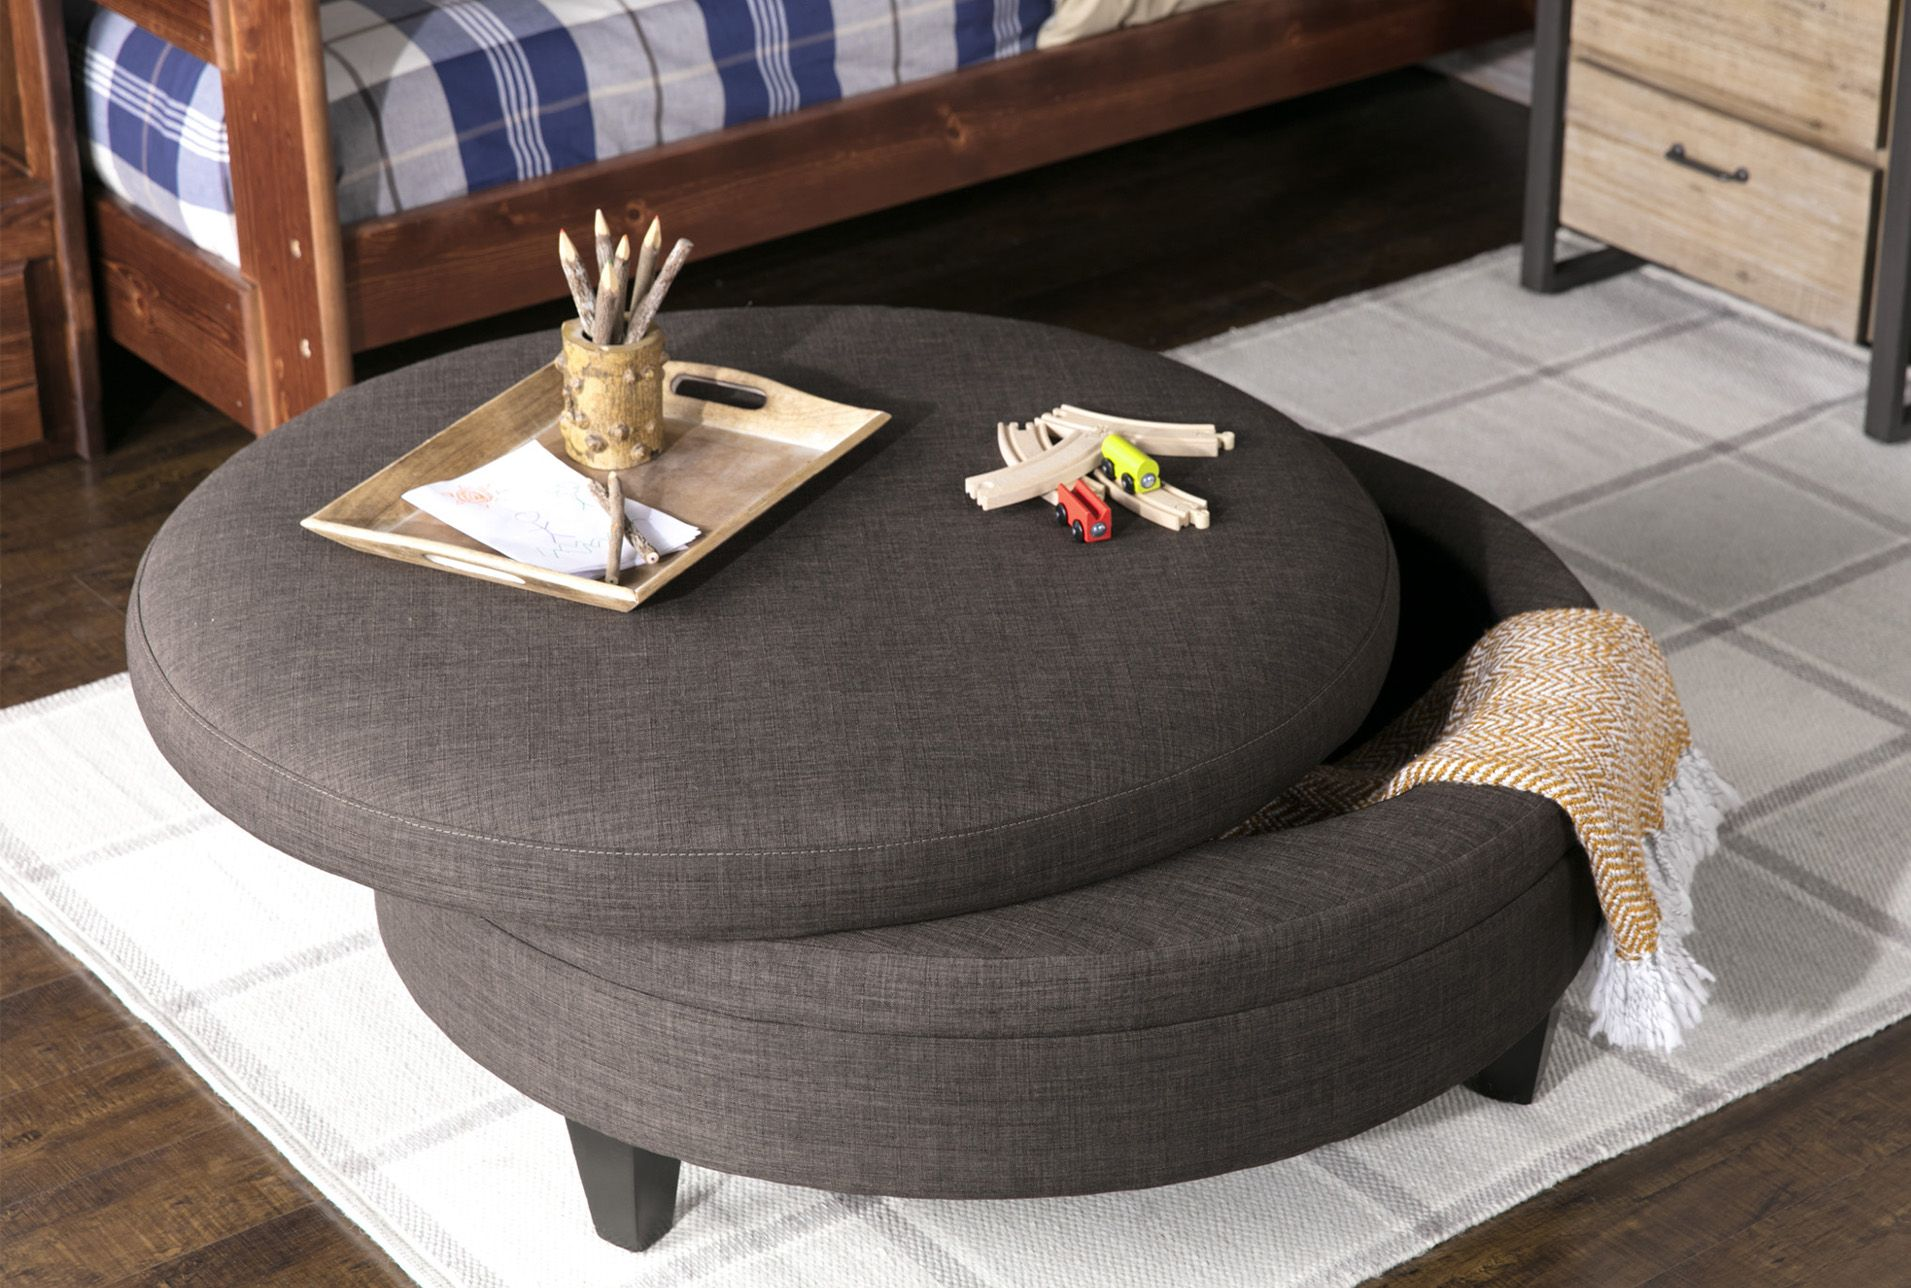 Terrific Adler Fabric Large Round Storage Ottoman In 2019 Round Caraccident5 Cool Chair Designs And Ideas Caraccident5Info